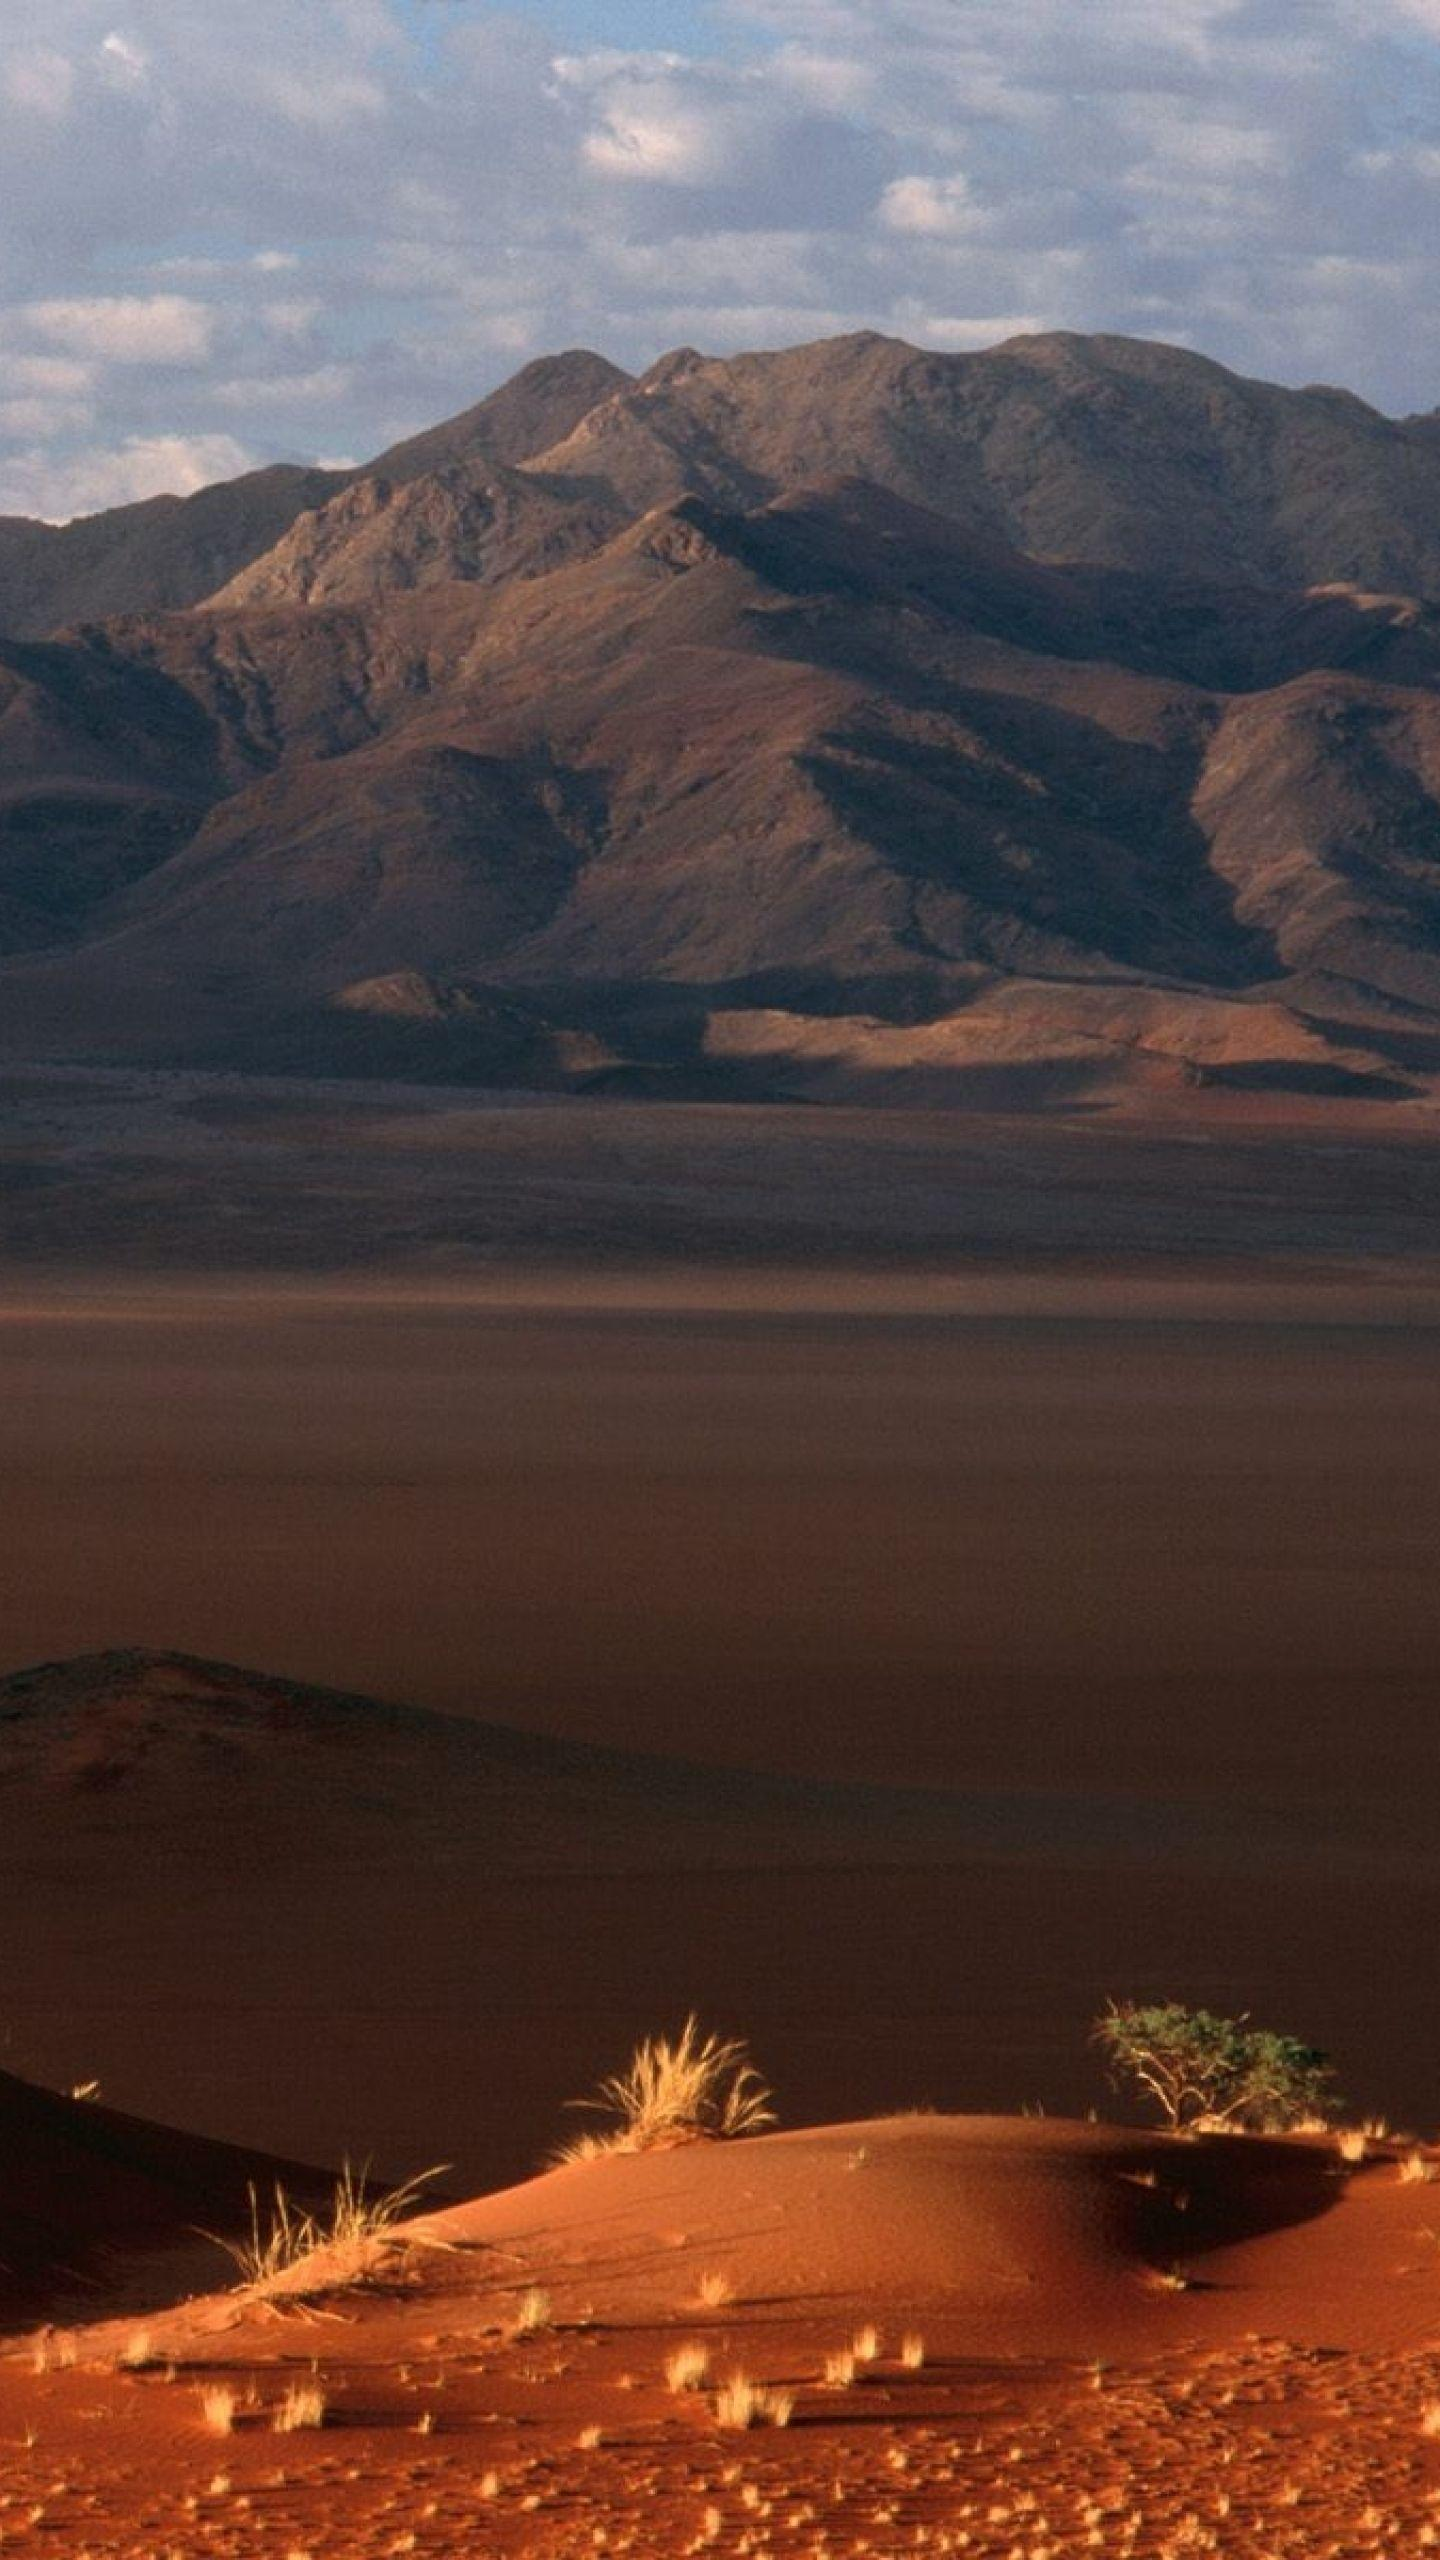 Download Wallpaper 1440x2560 Namibia, Desert, Sand, Mountains ...